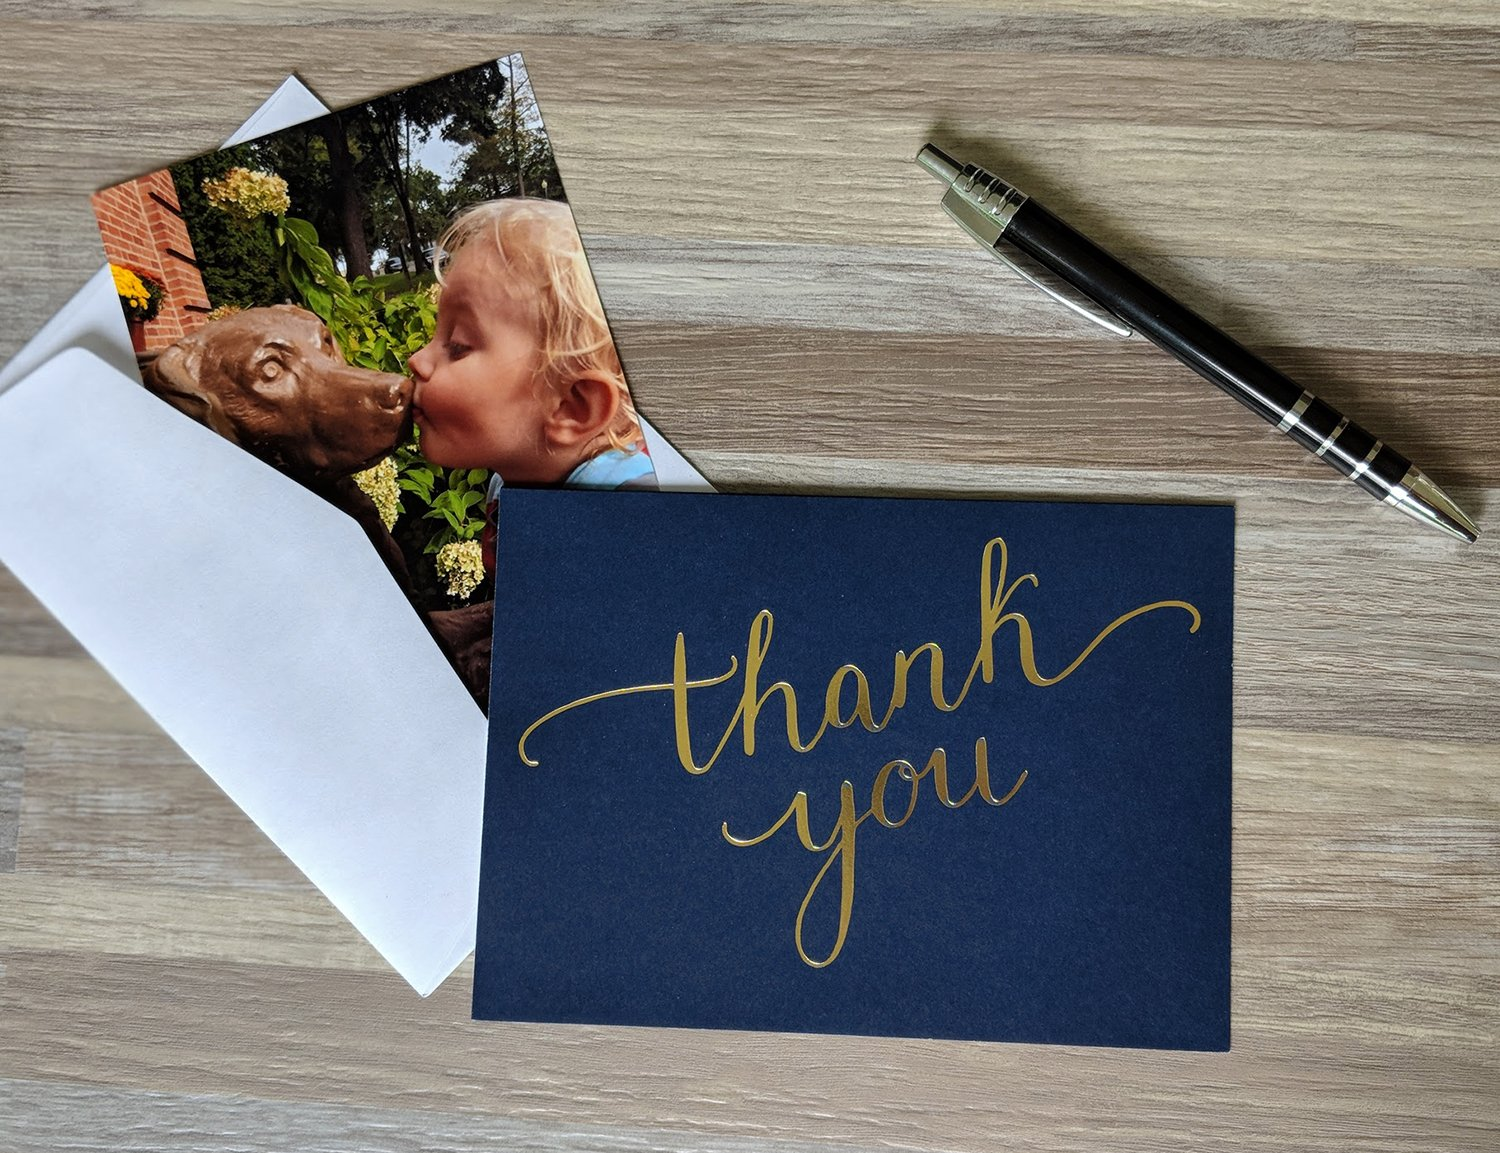 100 Thank You Cards Bulk - Thank You Notes, Navy Blue & Gold - Blank Note Cards with Envelopes - Perfect for Business, Wedding, Gift Cards, Graduation, Baby Shower, Funeral - 4x6 Photo Size by Spark Ink (Image #2)